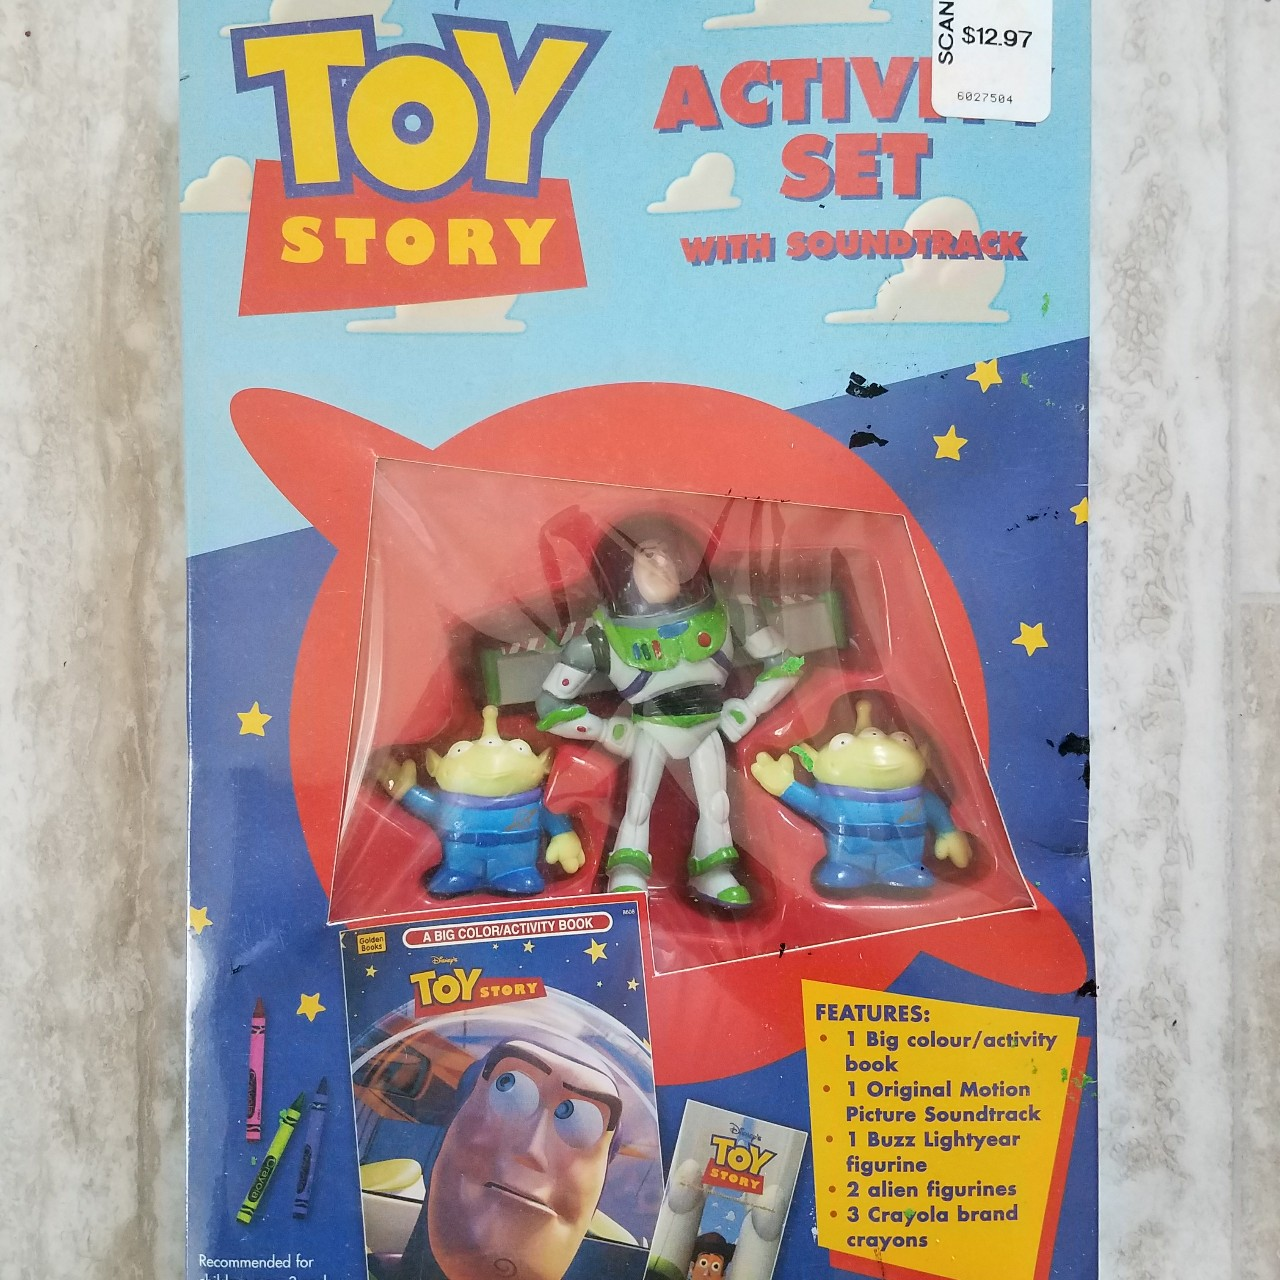 Toy Story Toys Vintage Vintage Toy Story Toys Collectables Bulk Price Depop